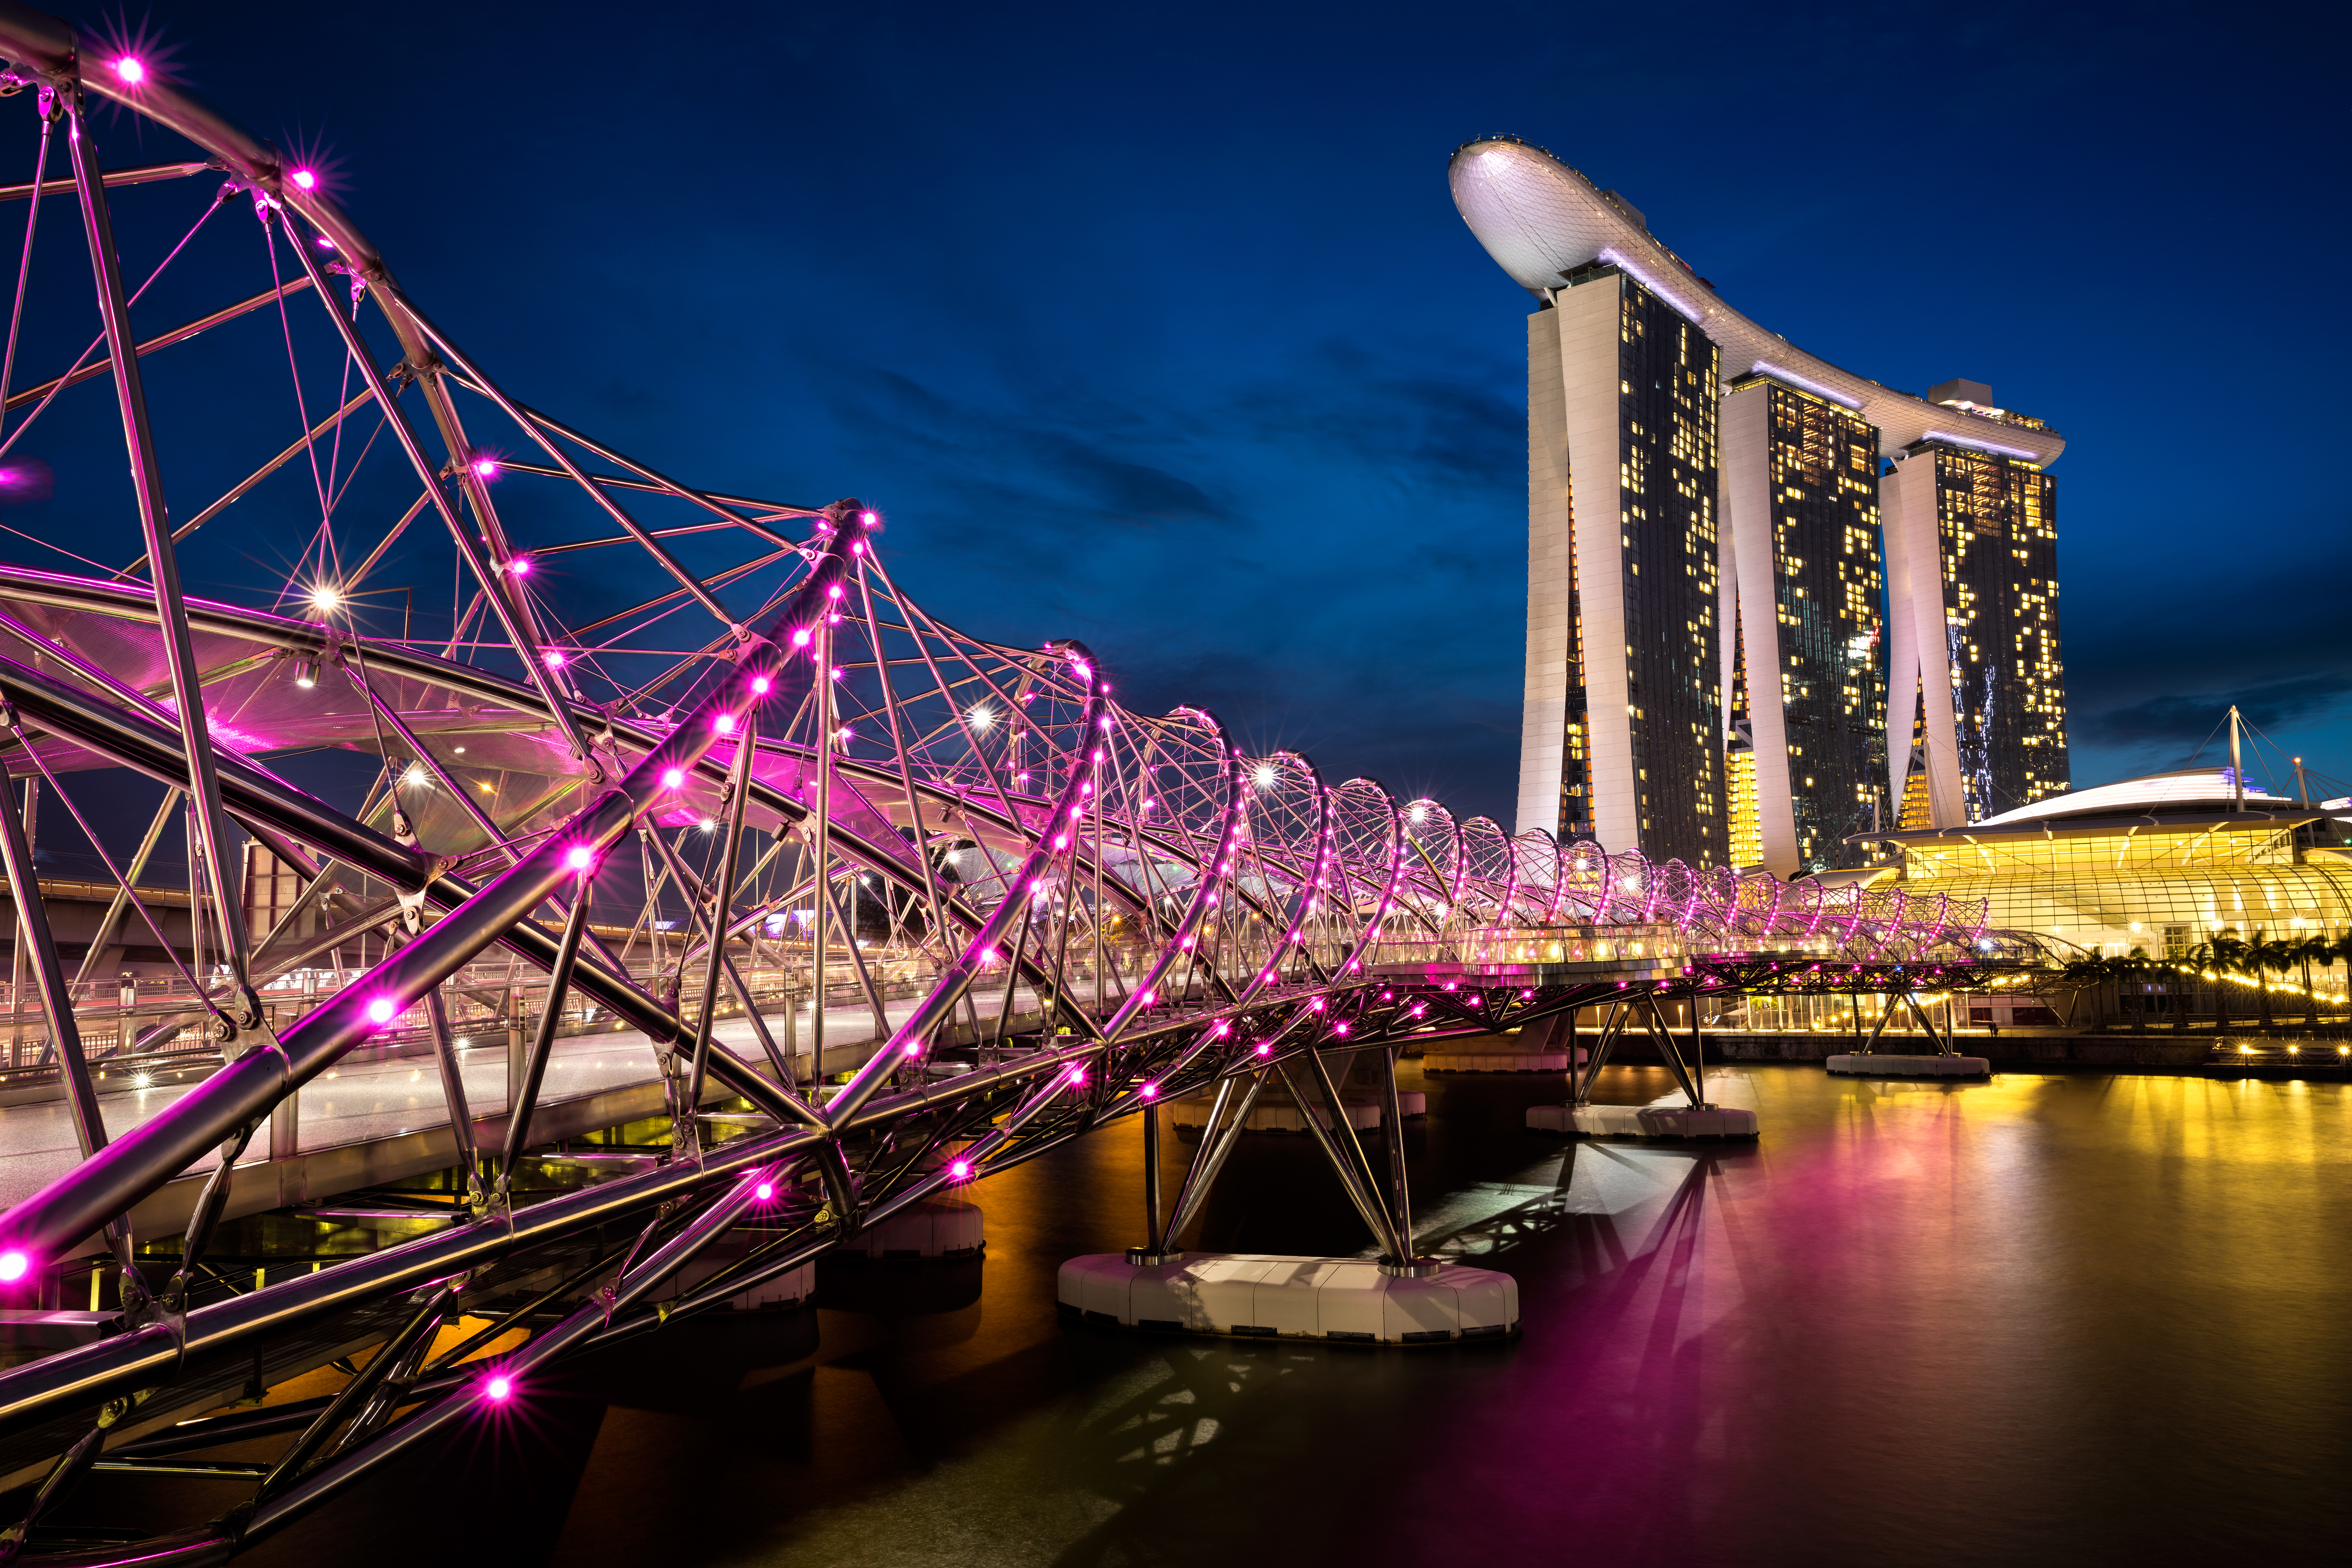 Singapore court clarifies maritime lien registration, rejects call for London arbitration